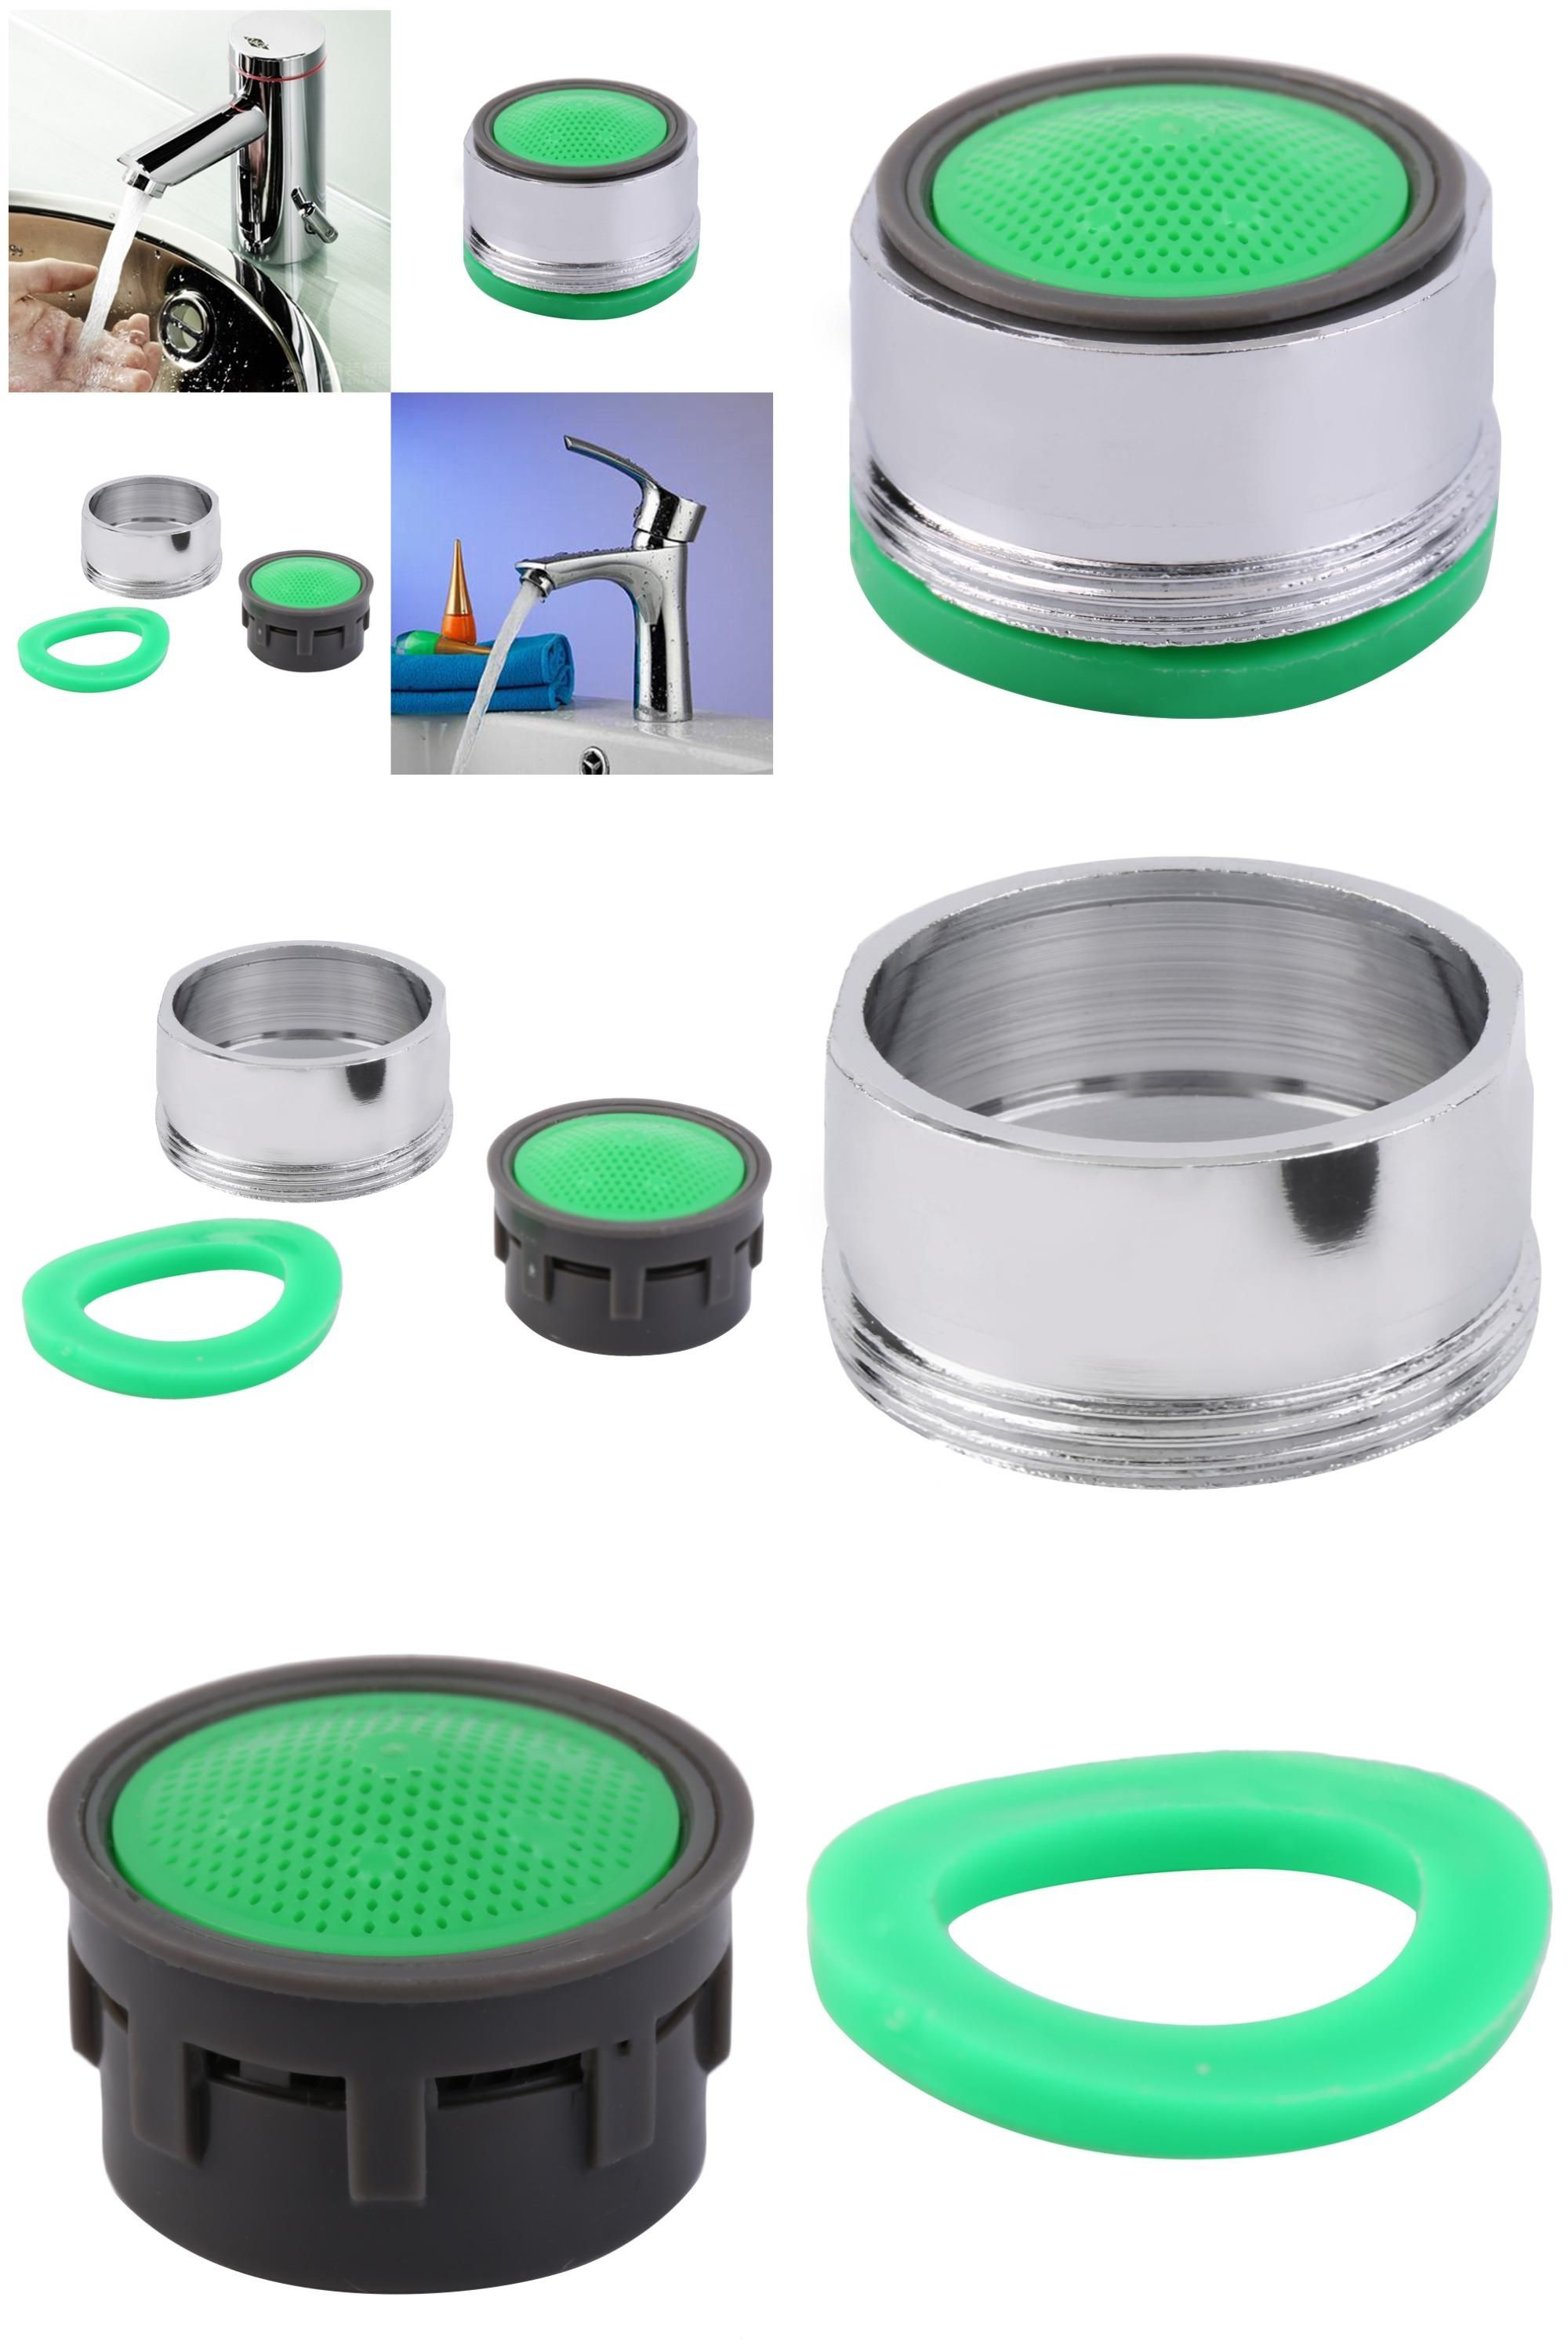 Visit to Buy] Faucet Tap Nozzle Thread Swivel Aerator Filter Sprayer ...